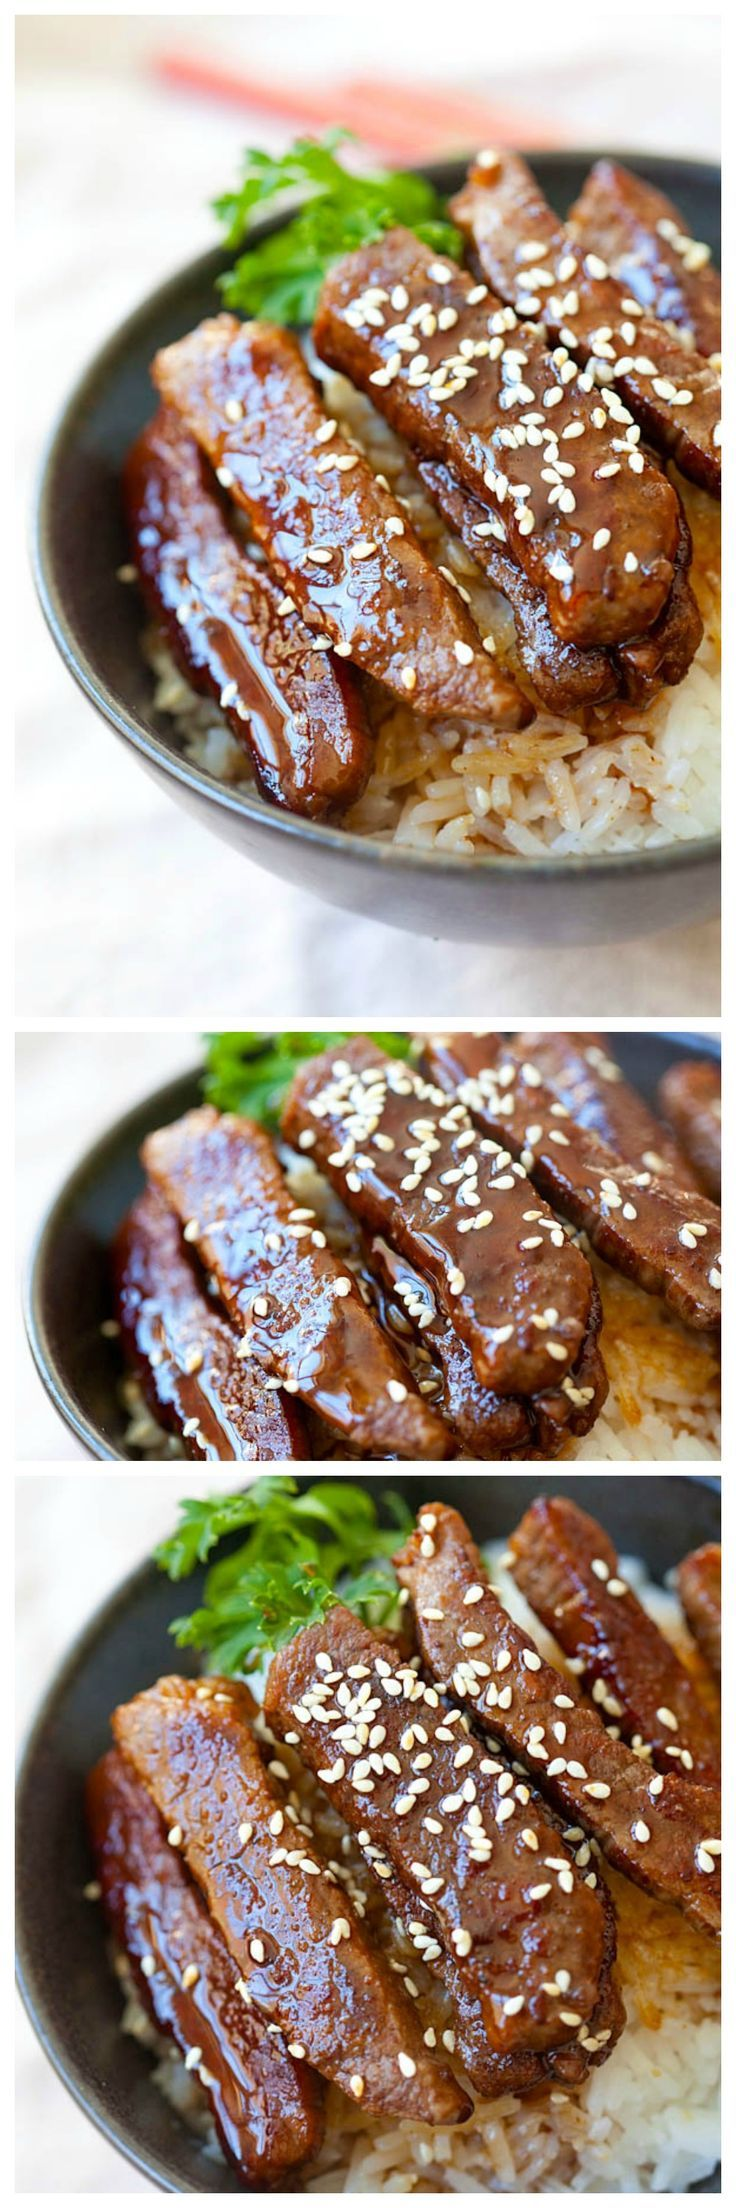 The best and easiest beef teriyaki recipe that takes 15 mins to make. You can make the beef teriyaki with your favorite cut of beef and homemade teriyaki sauce | rasamalaysia.com